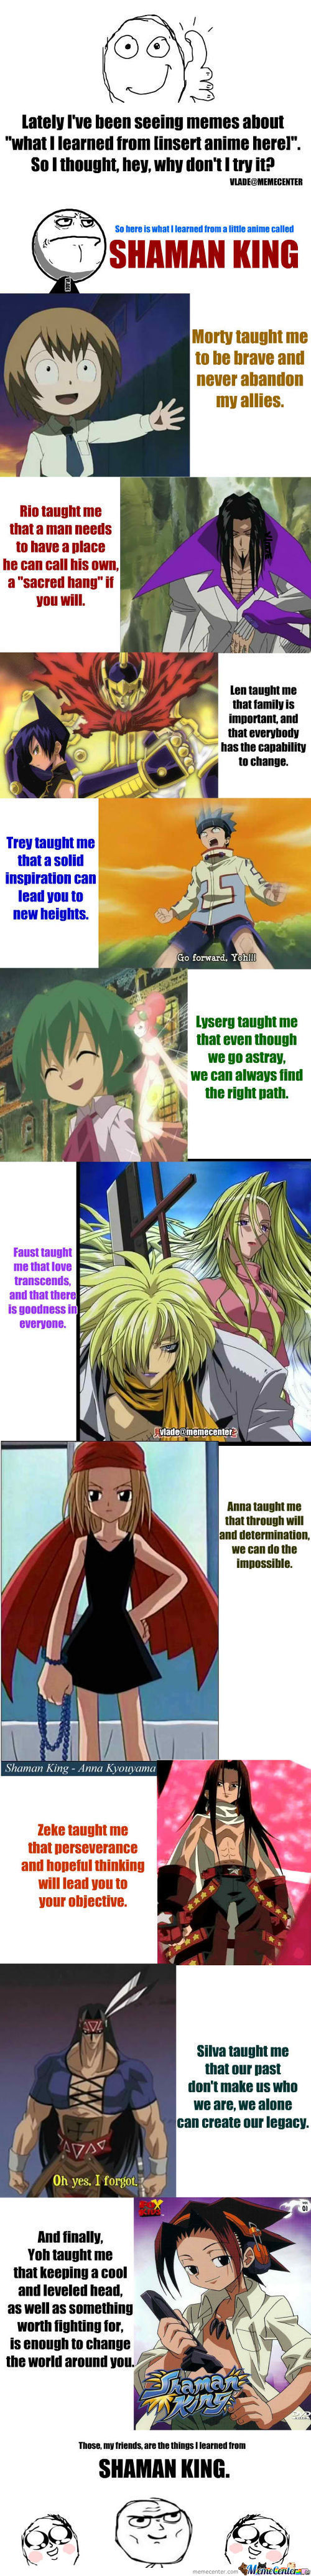 What I Learned From Anime: Shaman King